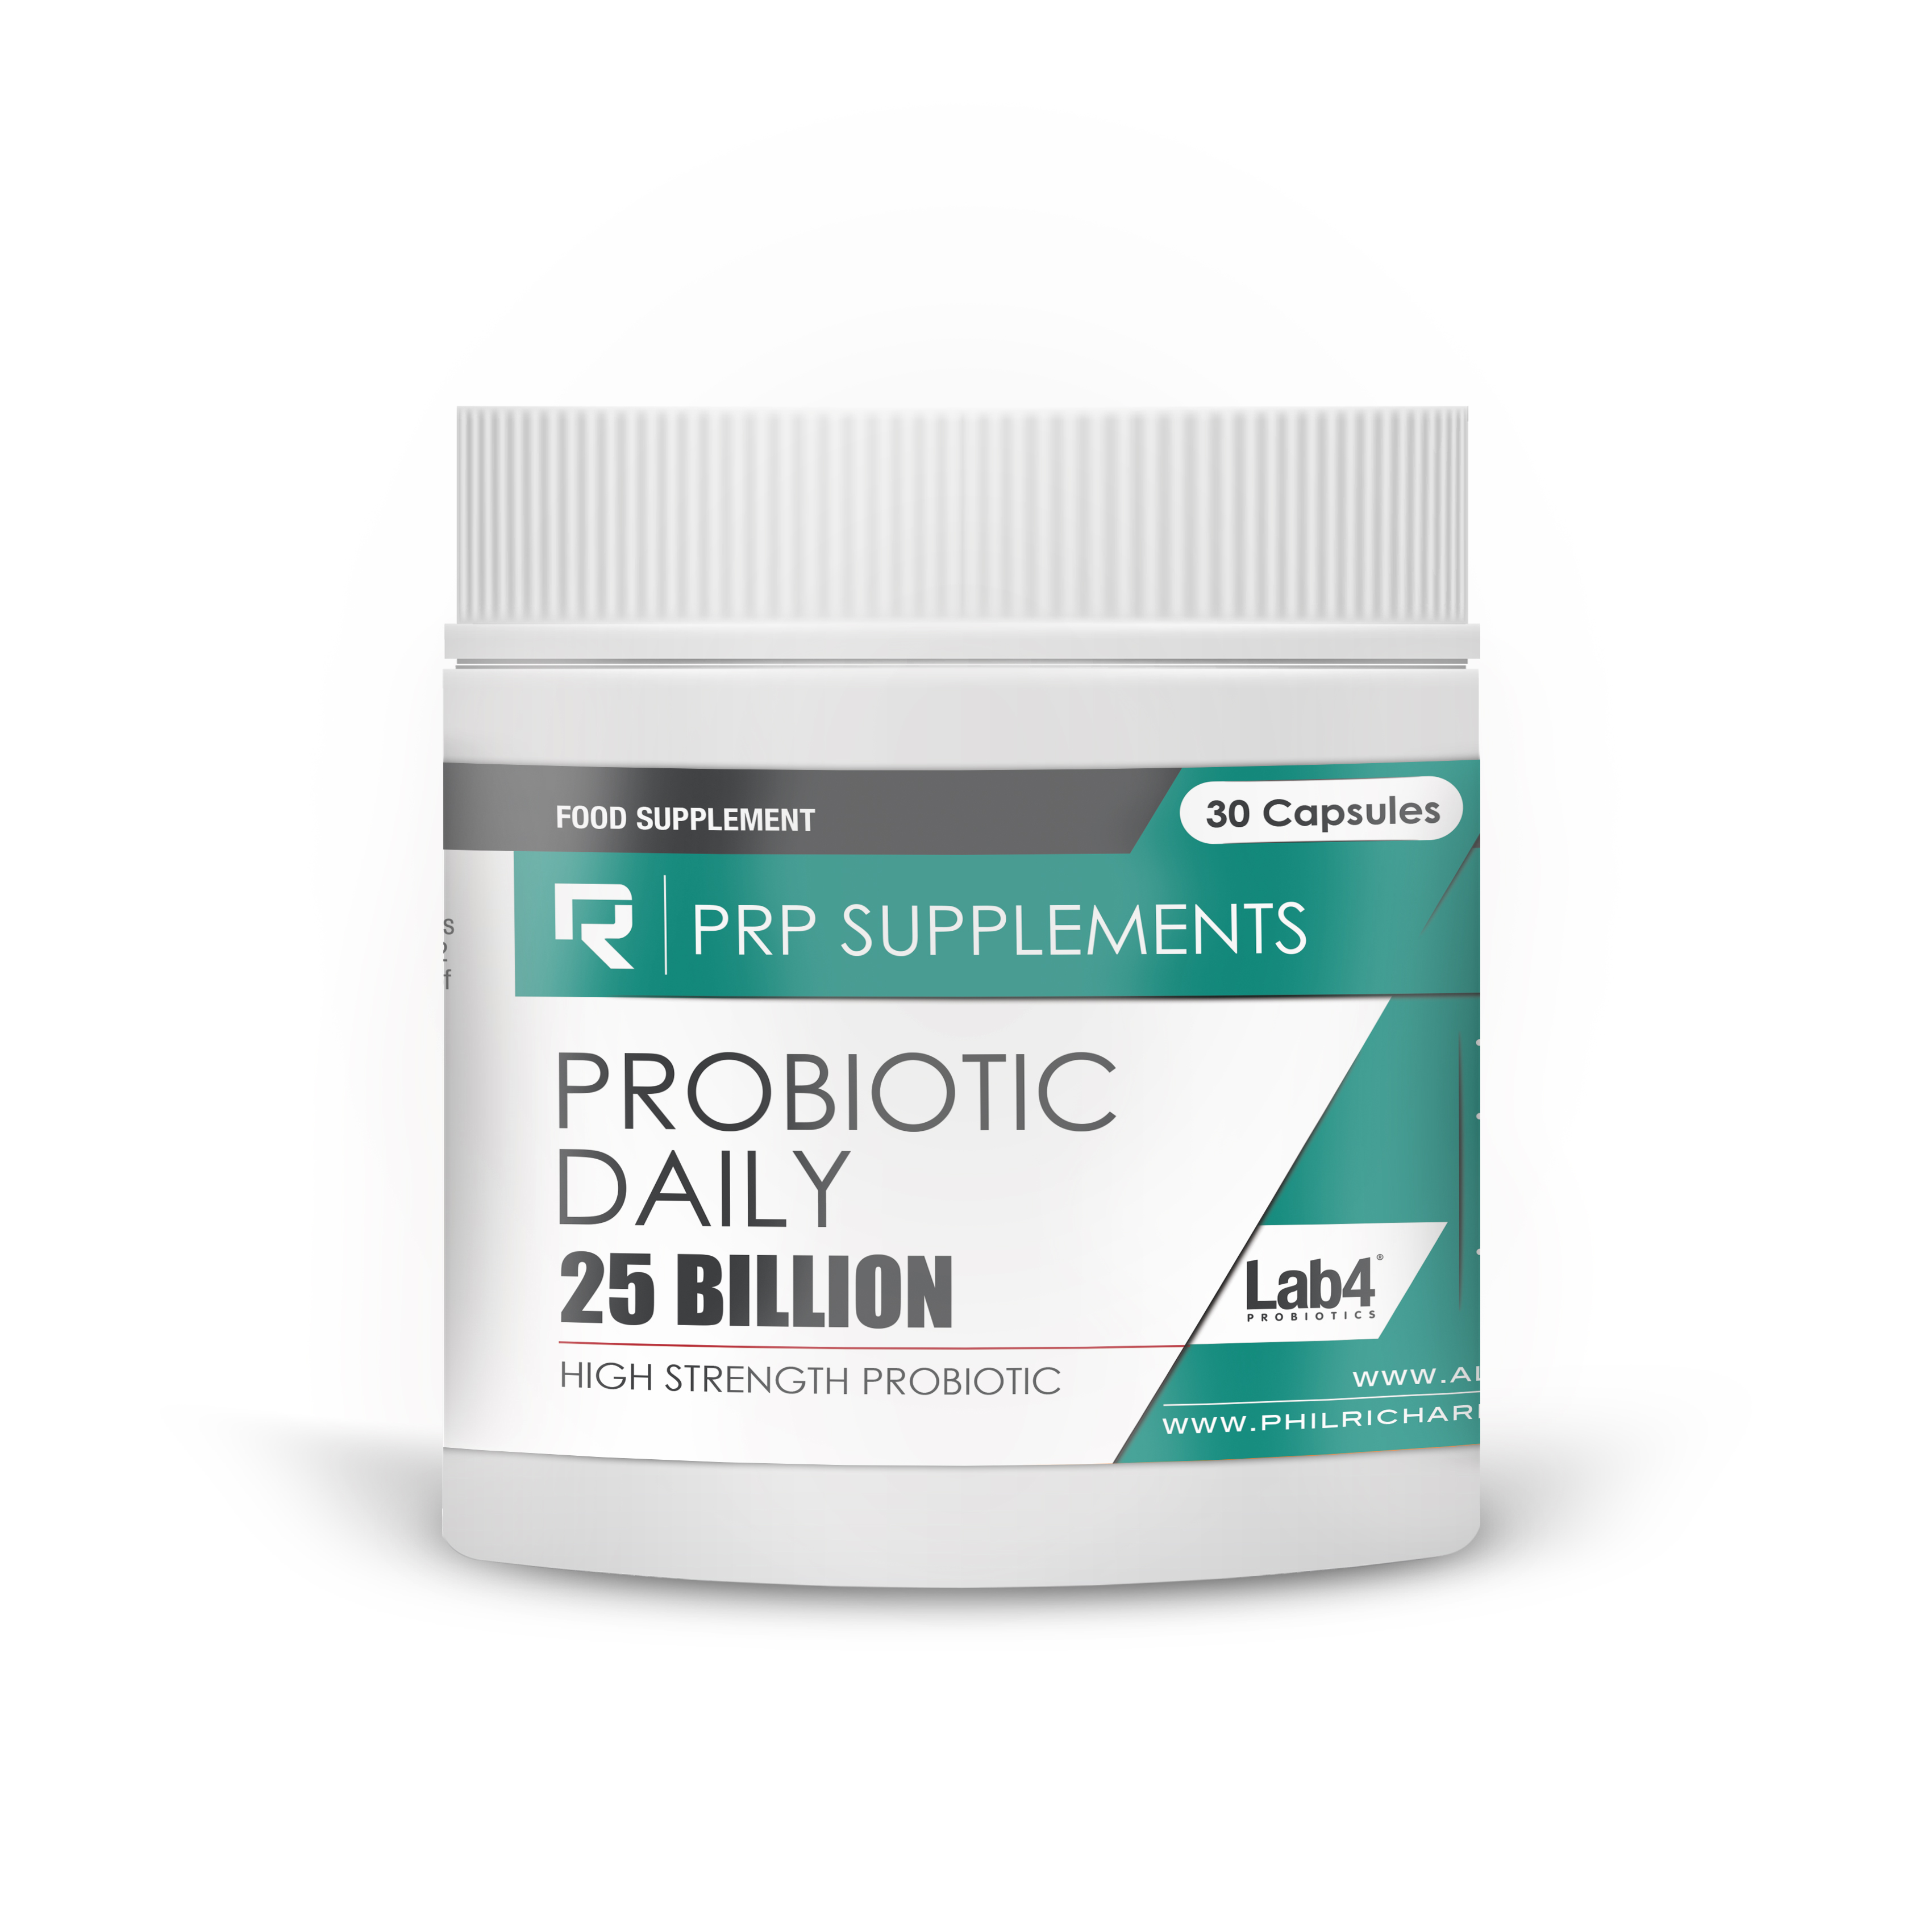 Probiotic daily 25 billion